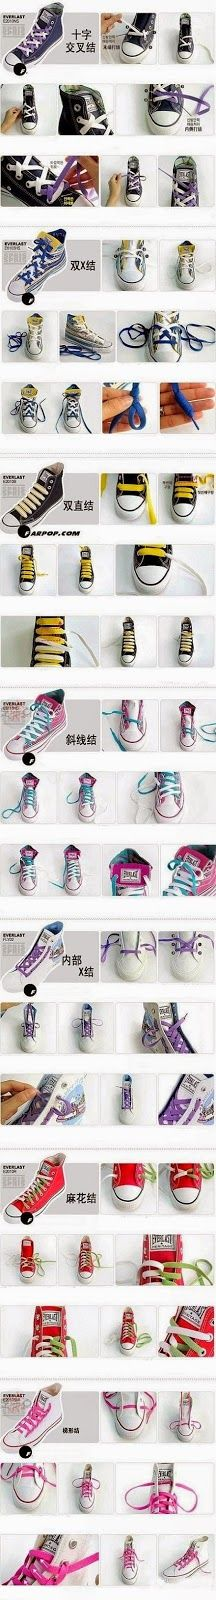 Different ways to tie your shoes or your kids fancy kicks...!